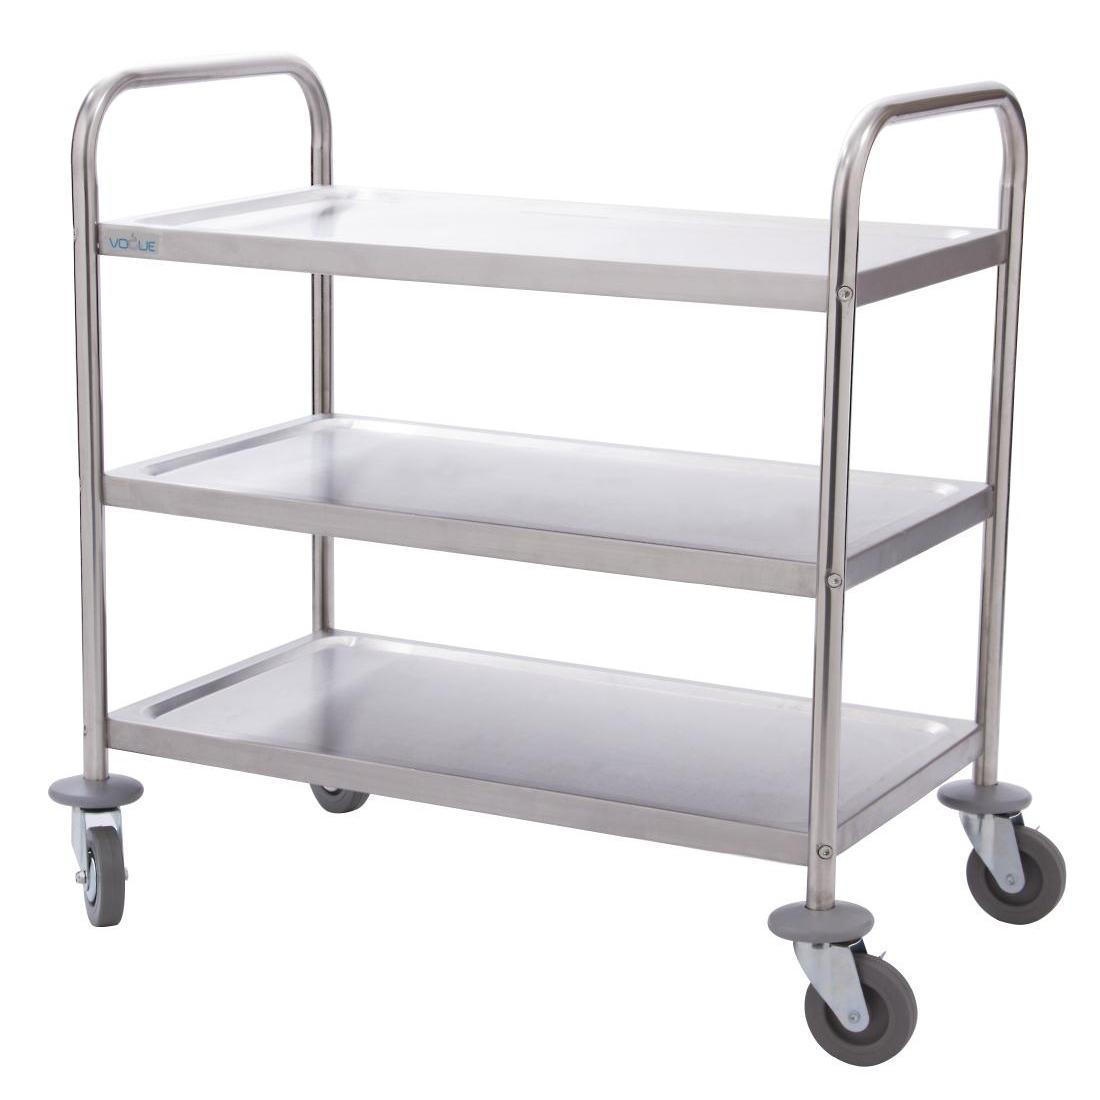 Vogue Stainless Steel 3 Tier Clearing Trolley Small - Each - F993